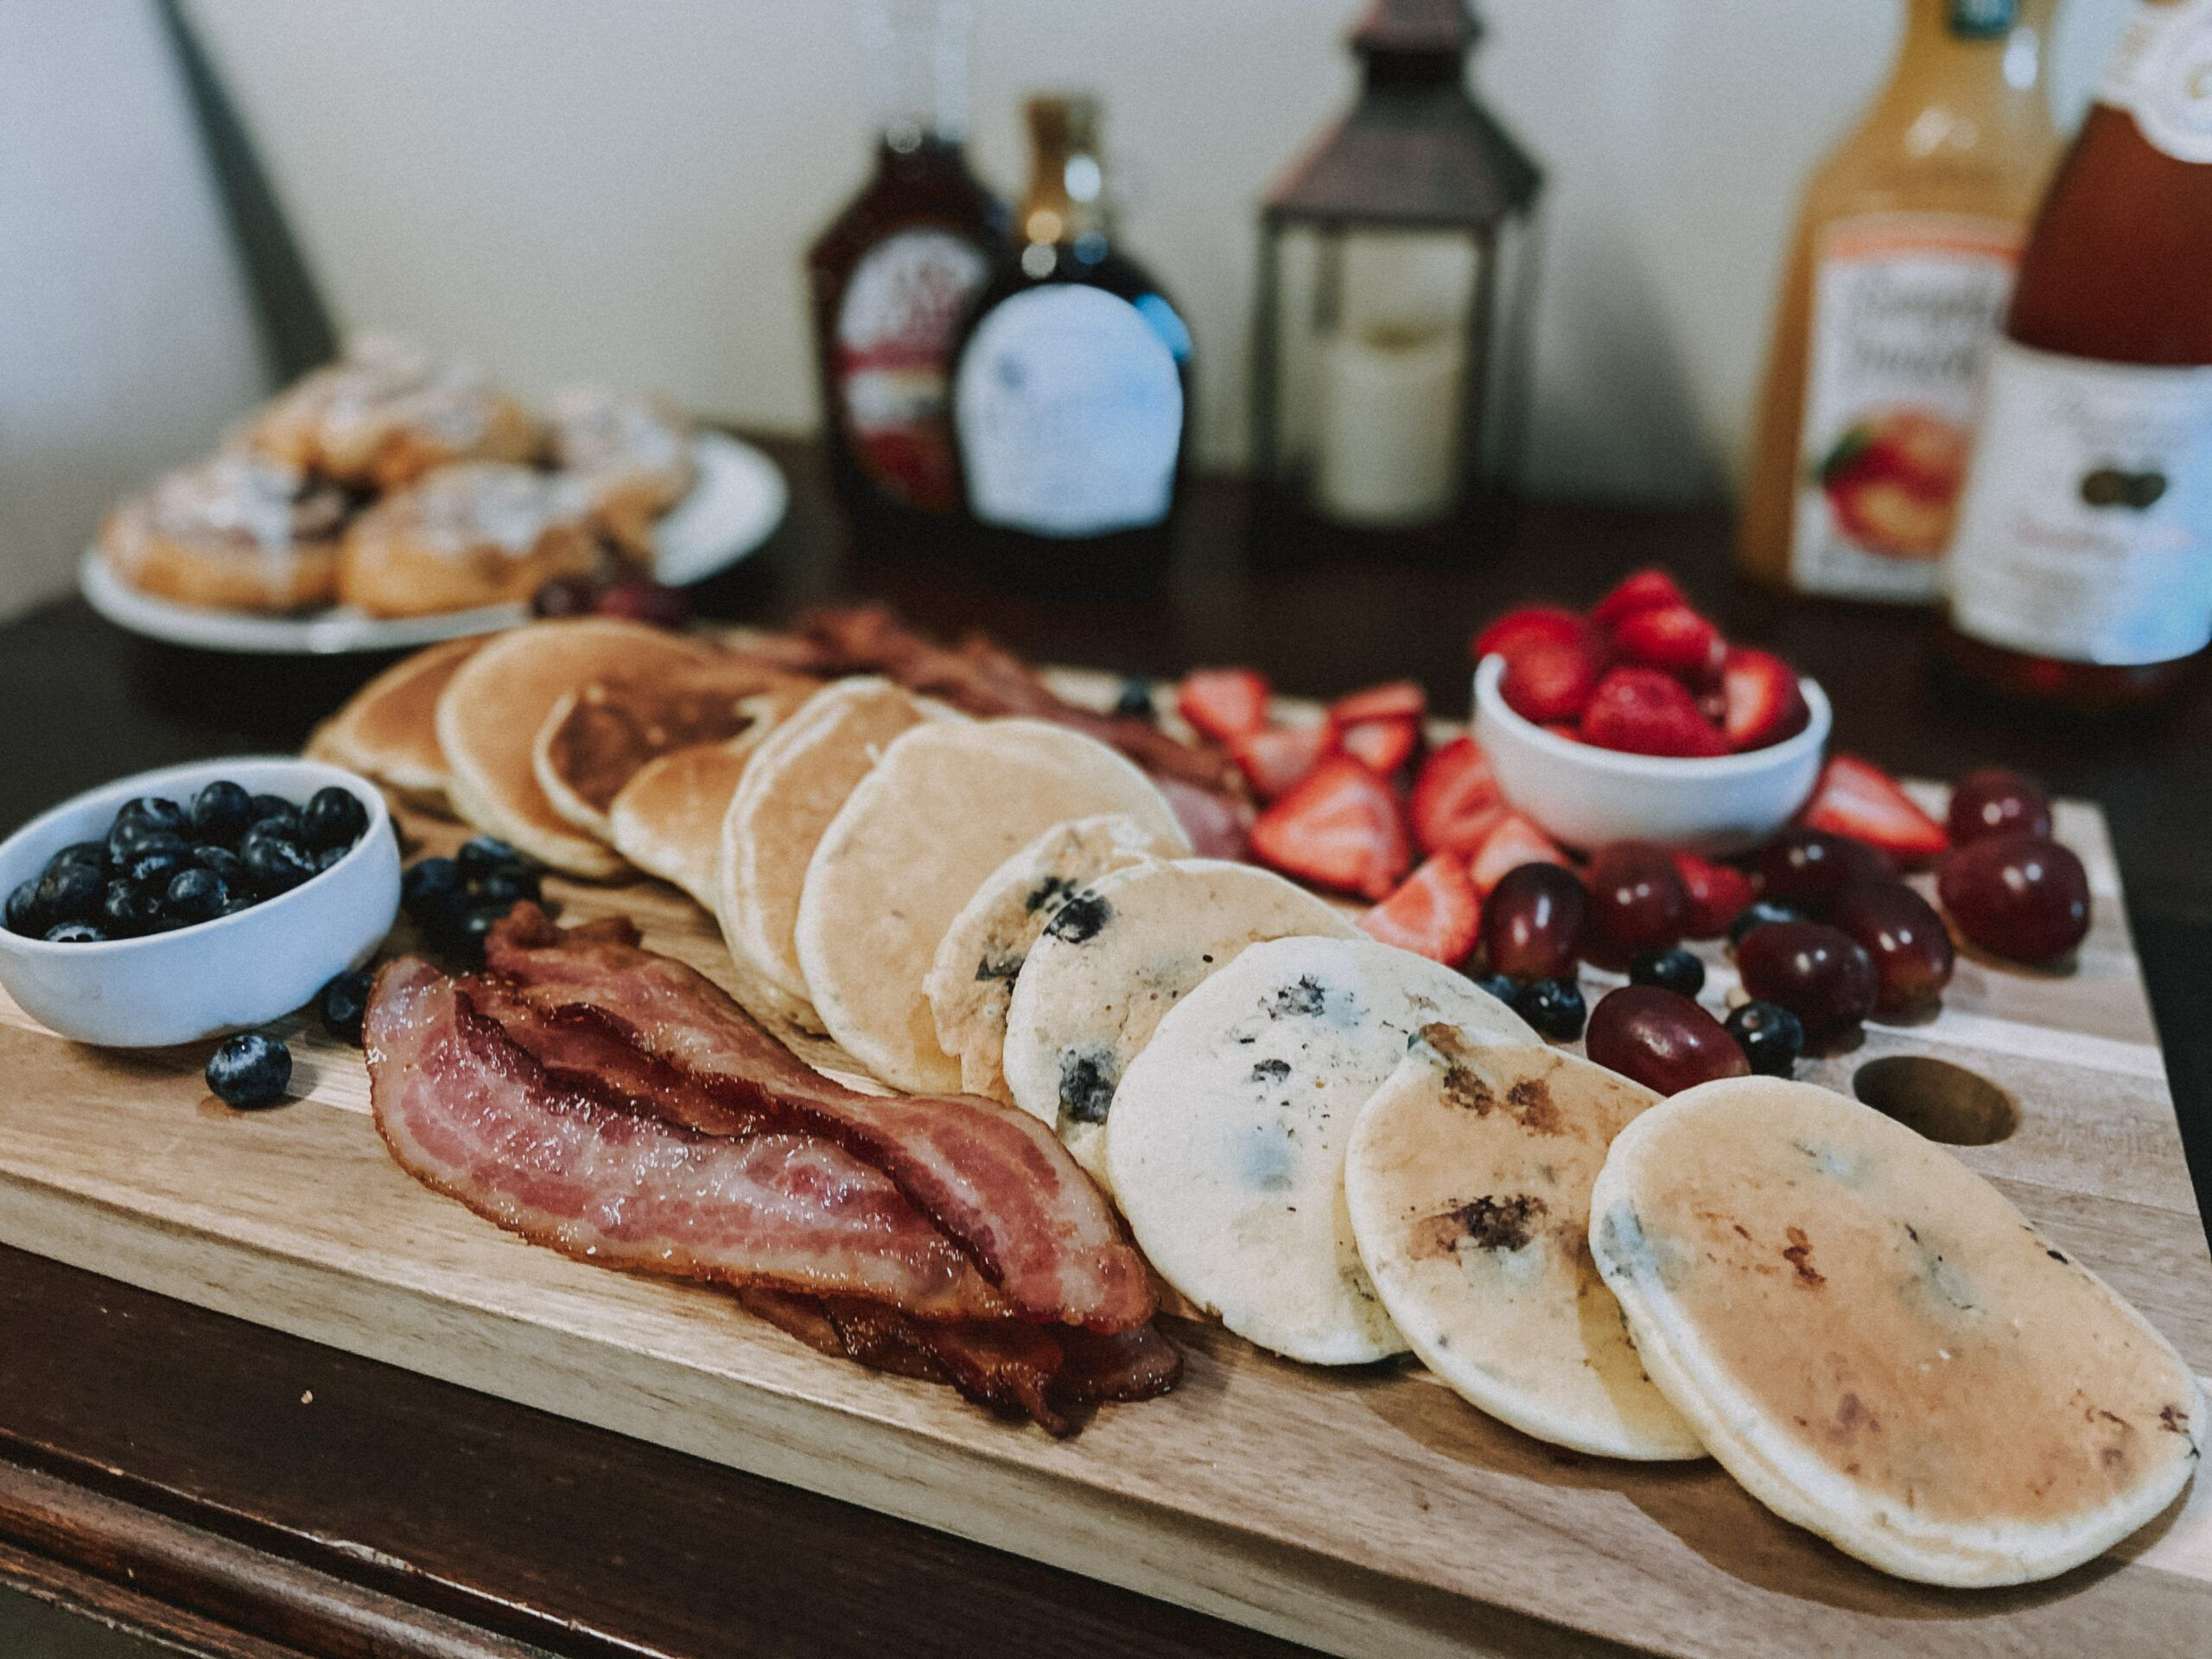 pancakes and bacon on cutting board with fruit